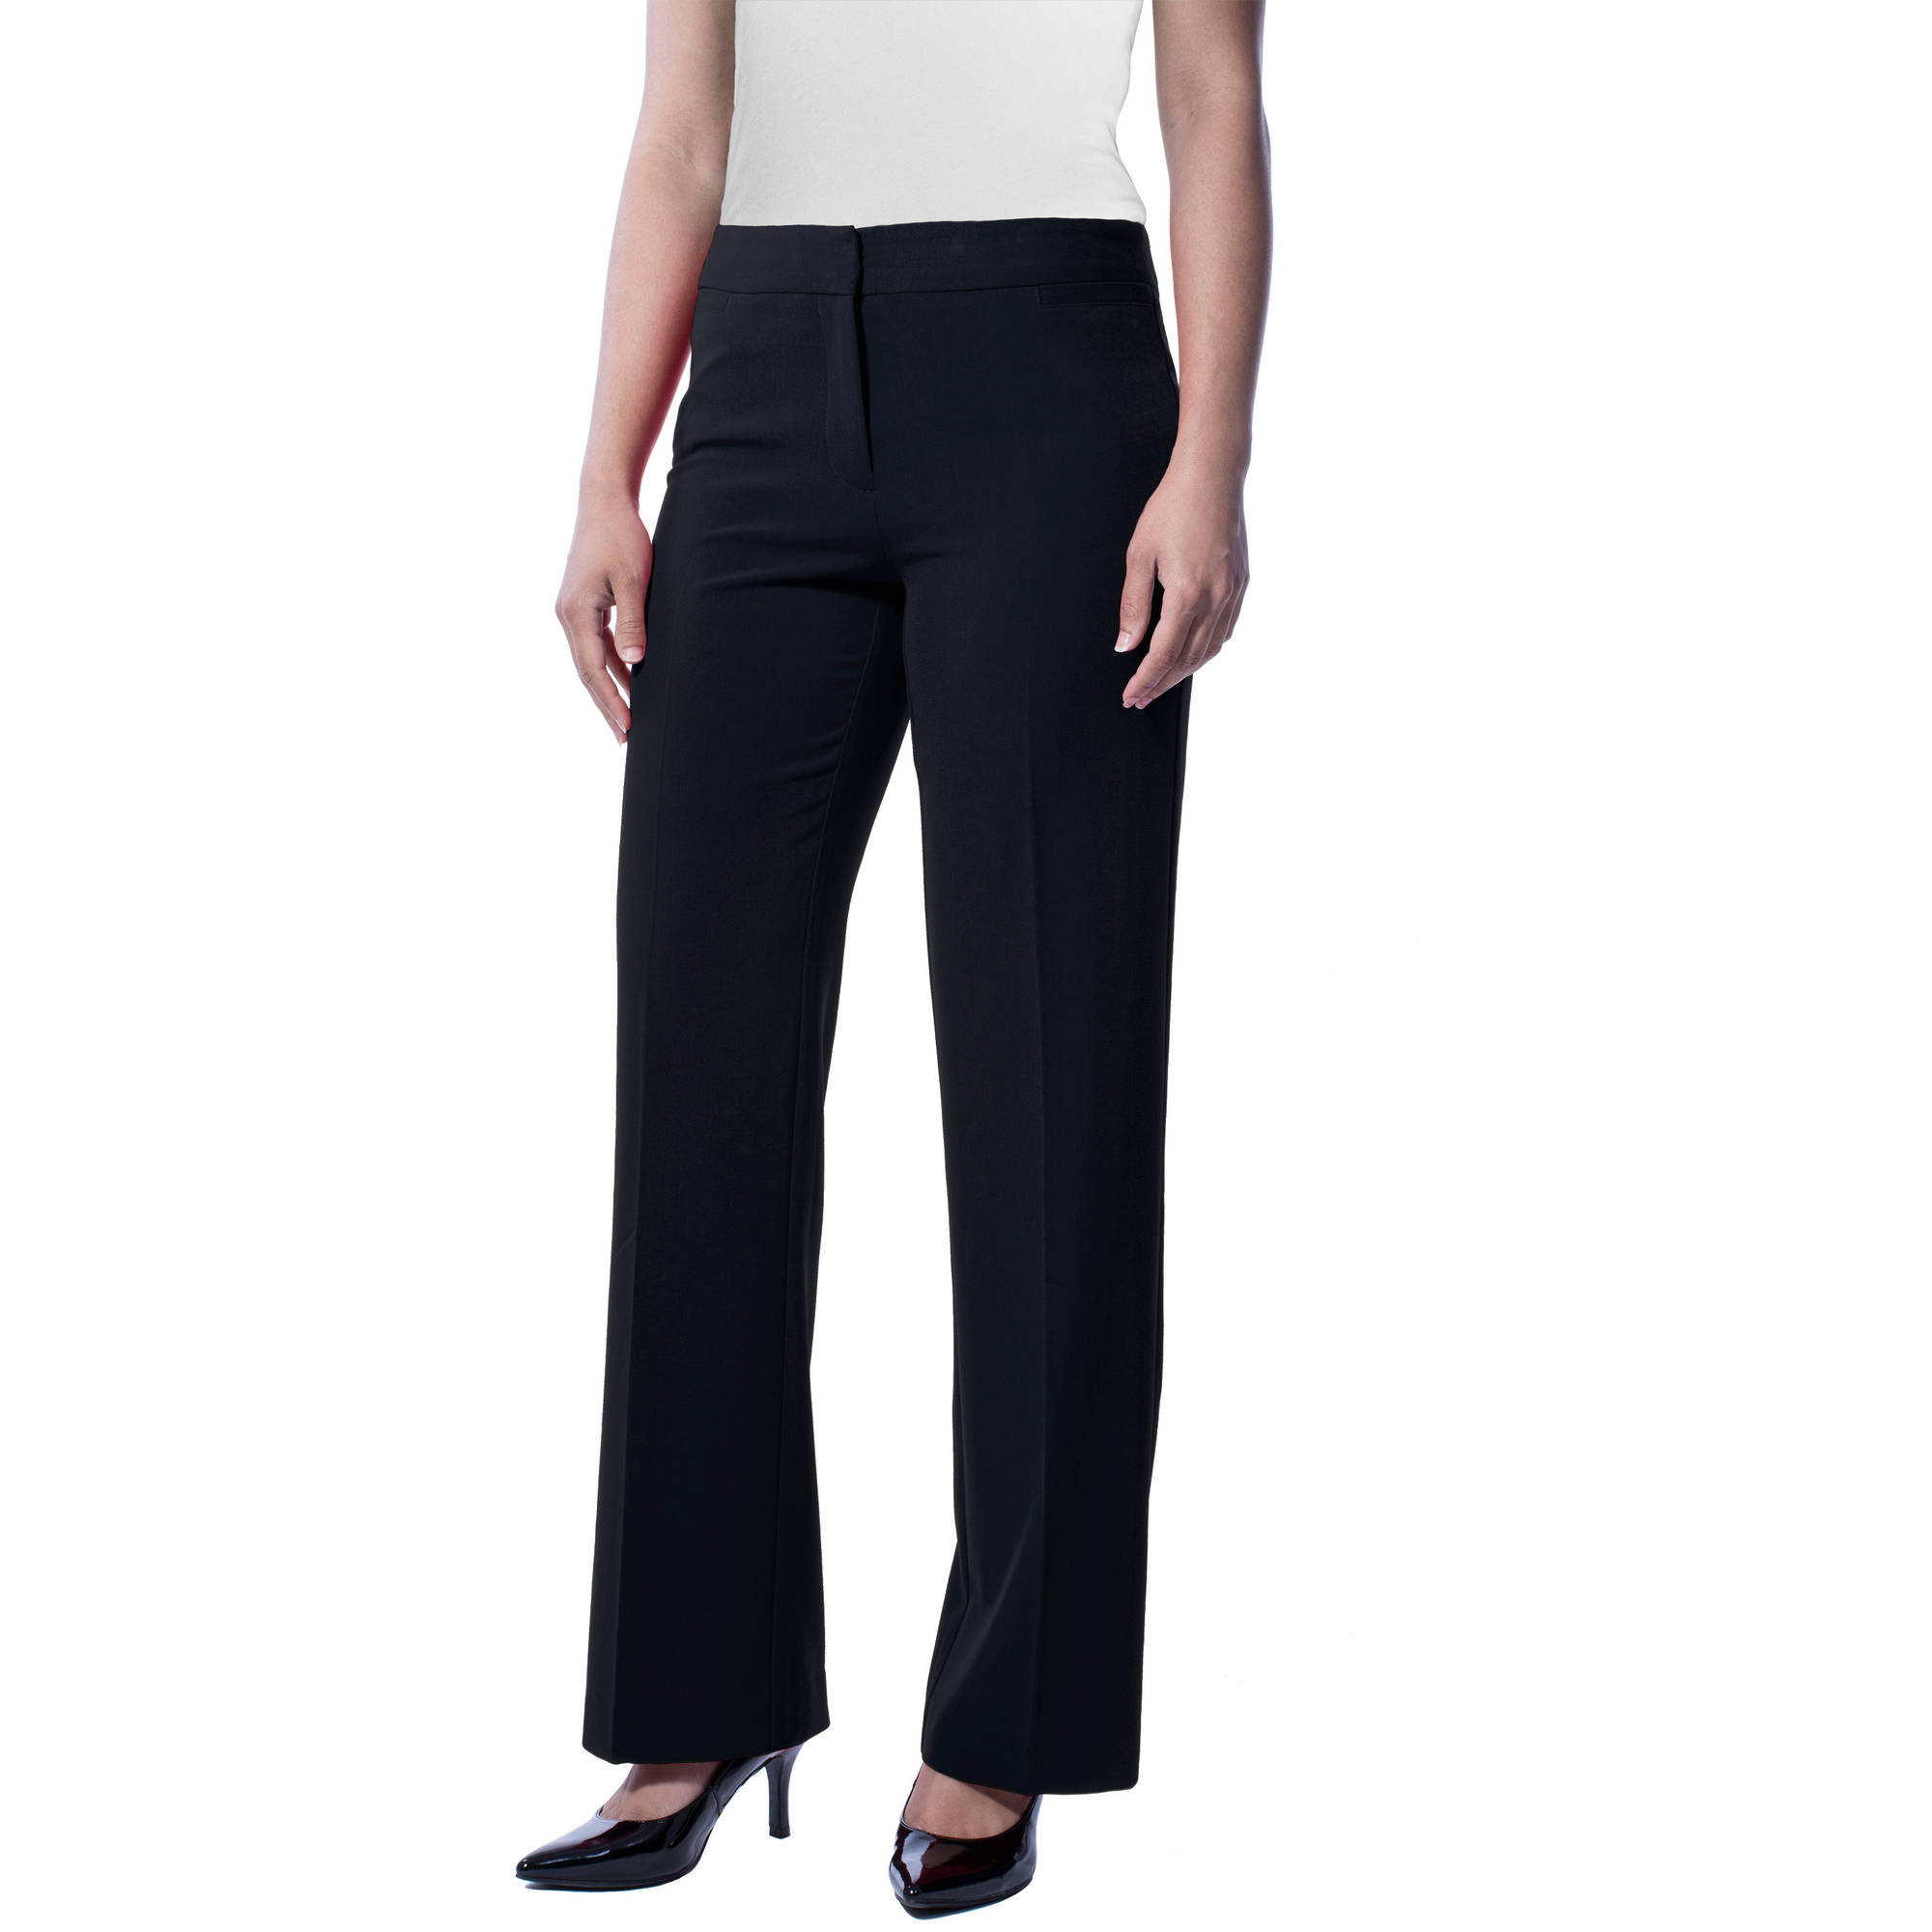 Excellent Prada Women Pants Business Trousers Chinos Black Green Size 38 40 26